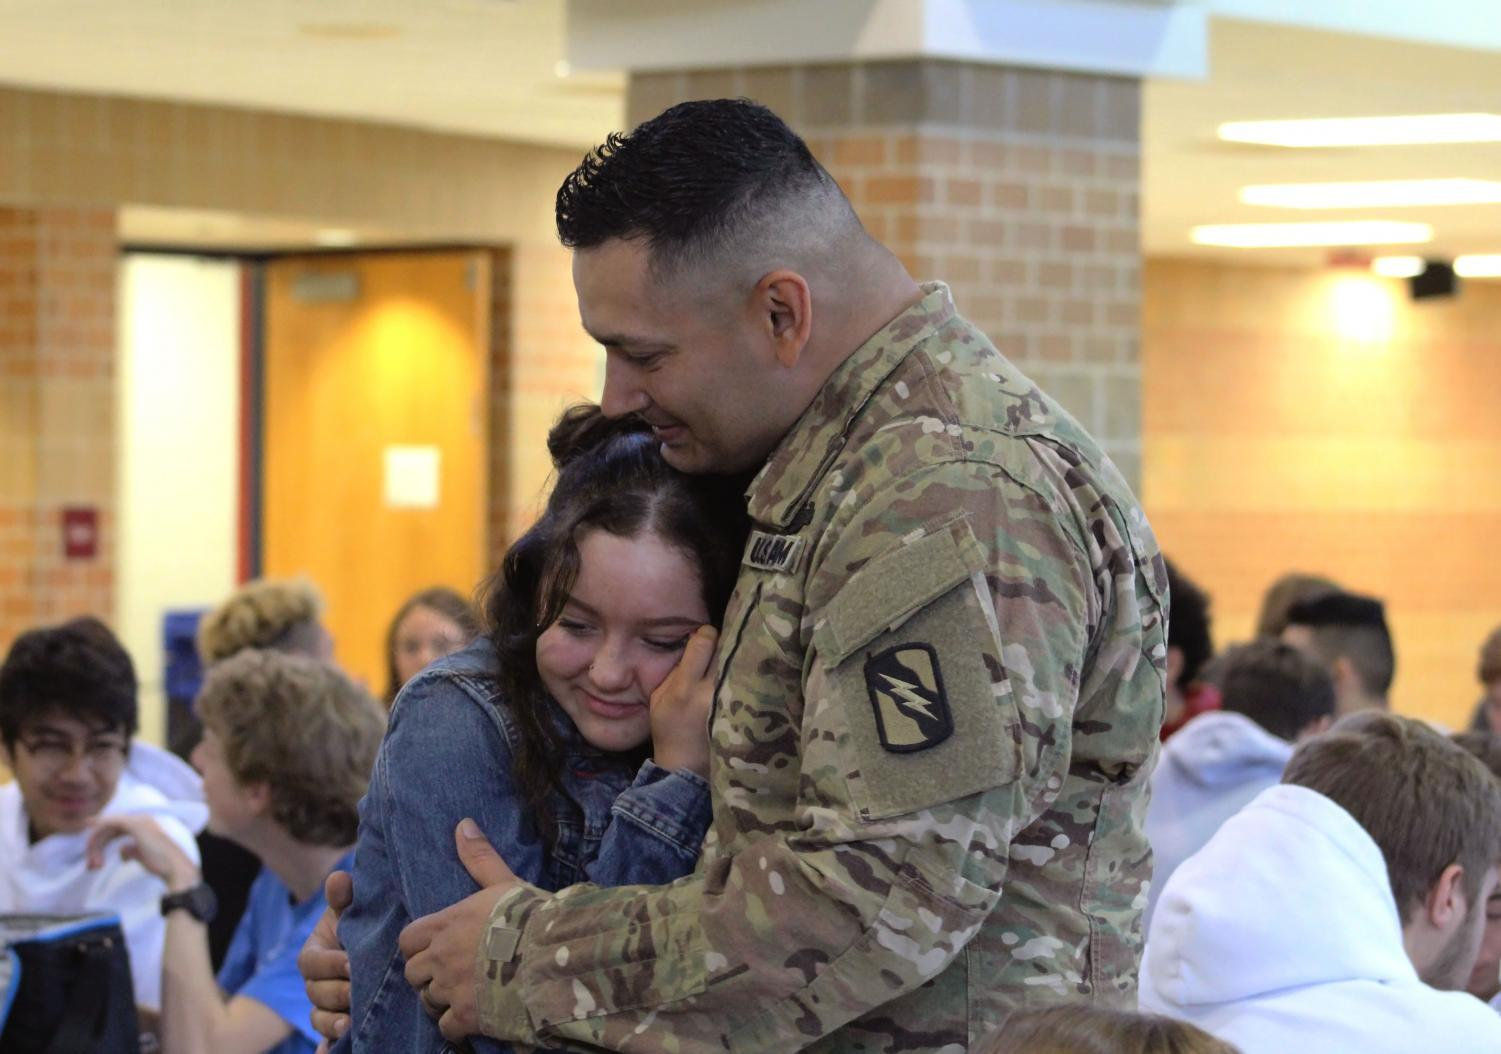 Junior Hannah Martinez smiles in embrace as she reunites with her father. He has been serving for 14 months overseas om the military.